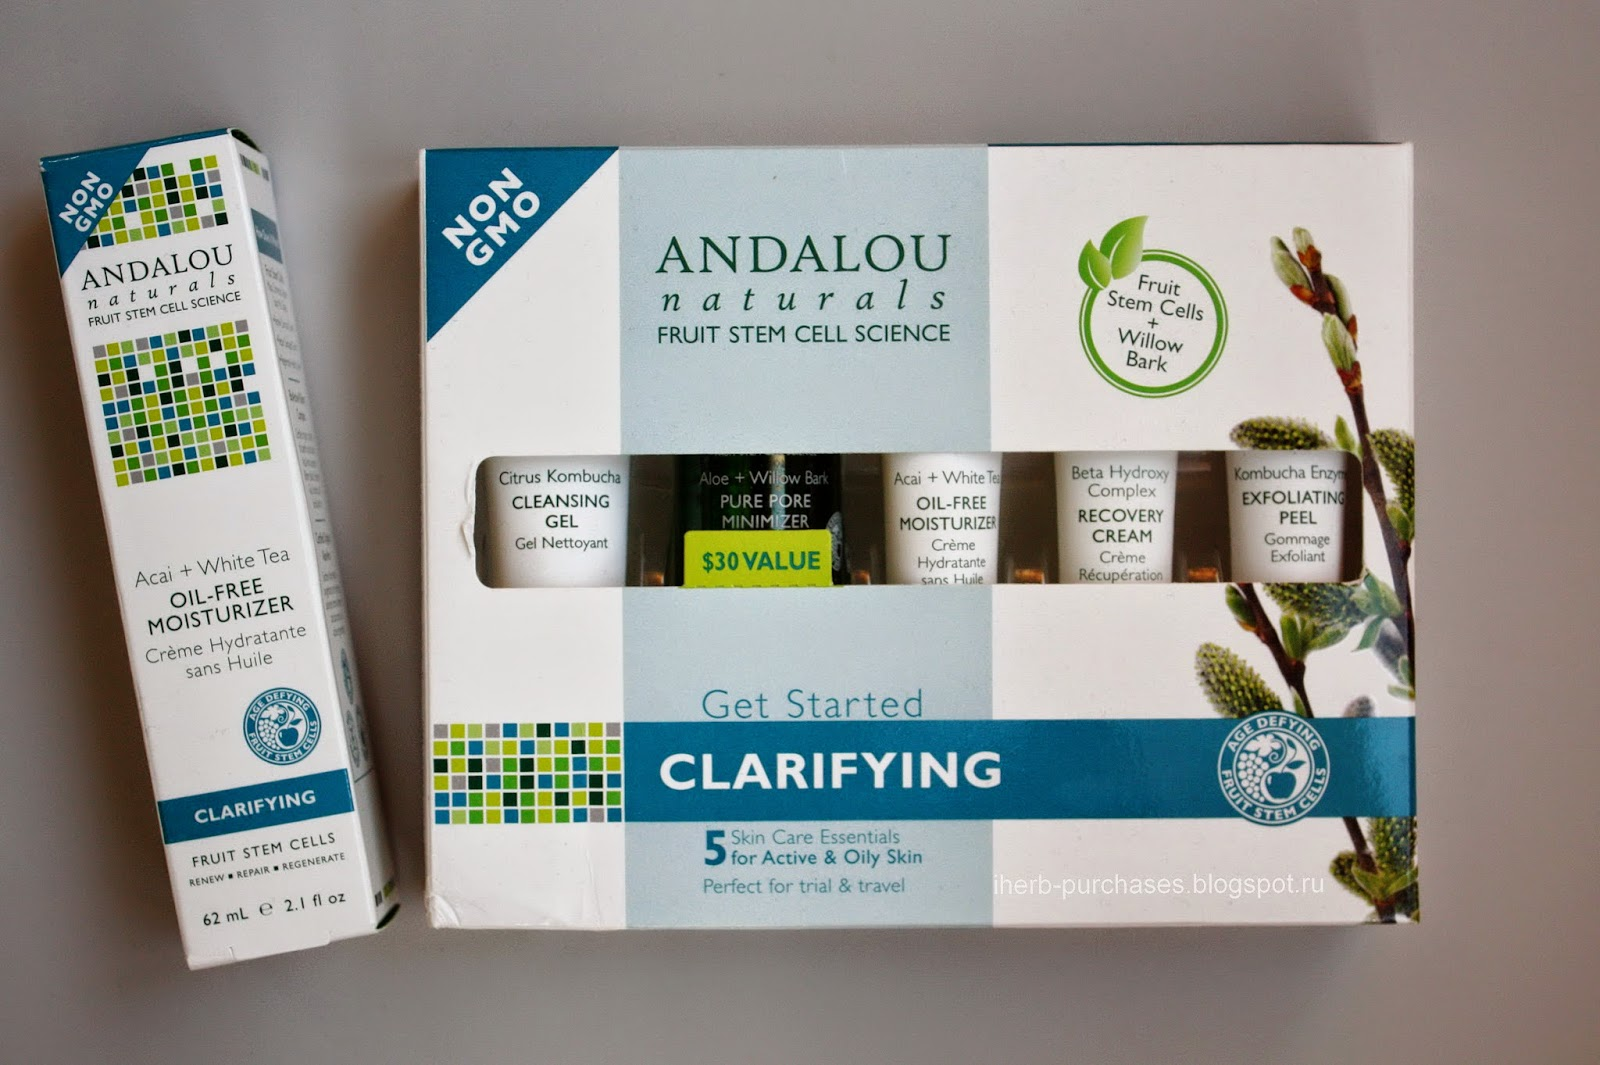 Andalou Naturals, Get Started Clarifying, Skin Care Essentials, 5 Piece Kit + Andalou Naturals, Oil-Free Moisturizer, Acai + White Tea, 2.1 fl oz (62 ml)